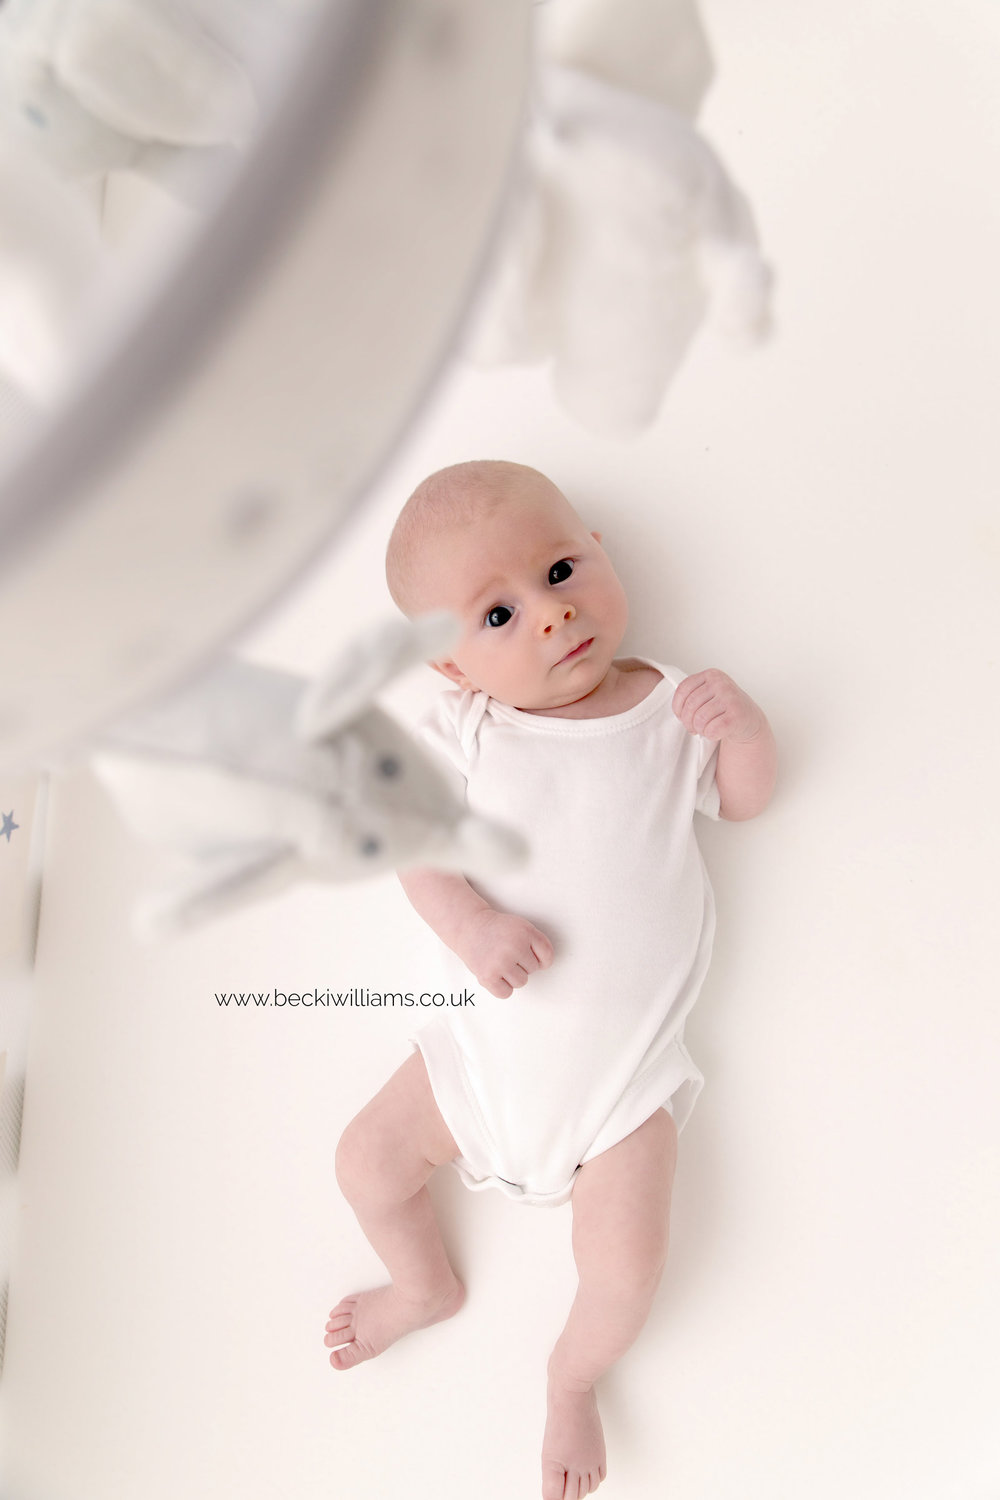 lifestyle-newborn-photography-relaxed-at-home-cot.jpg